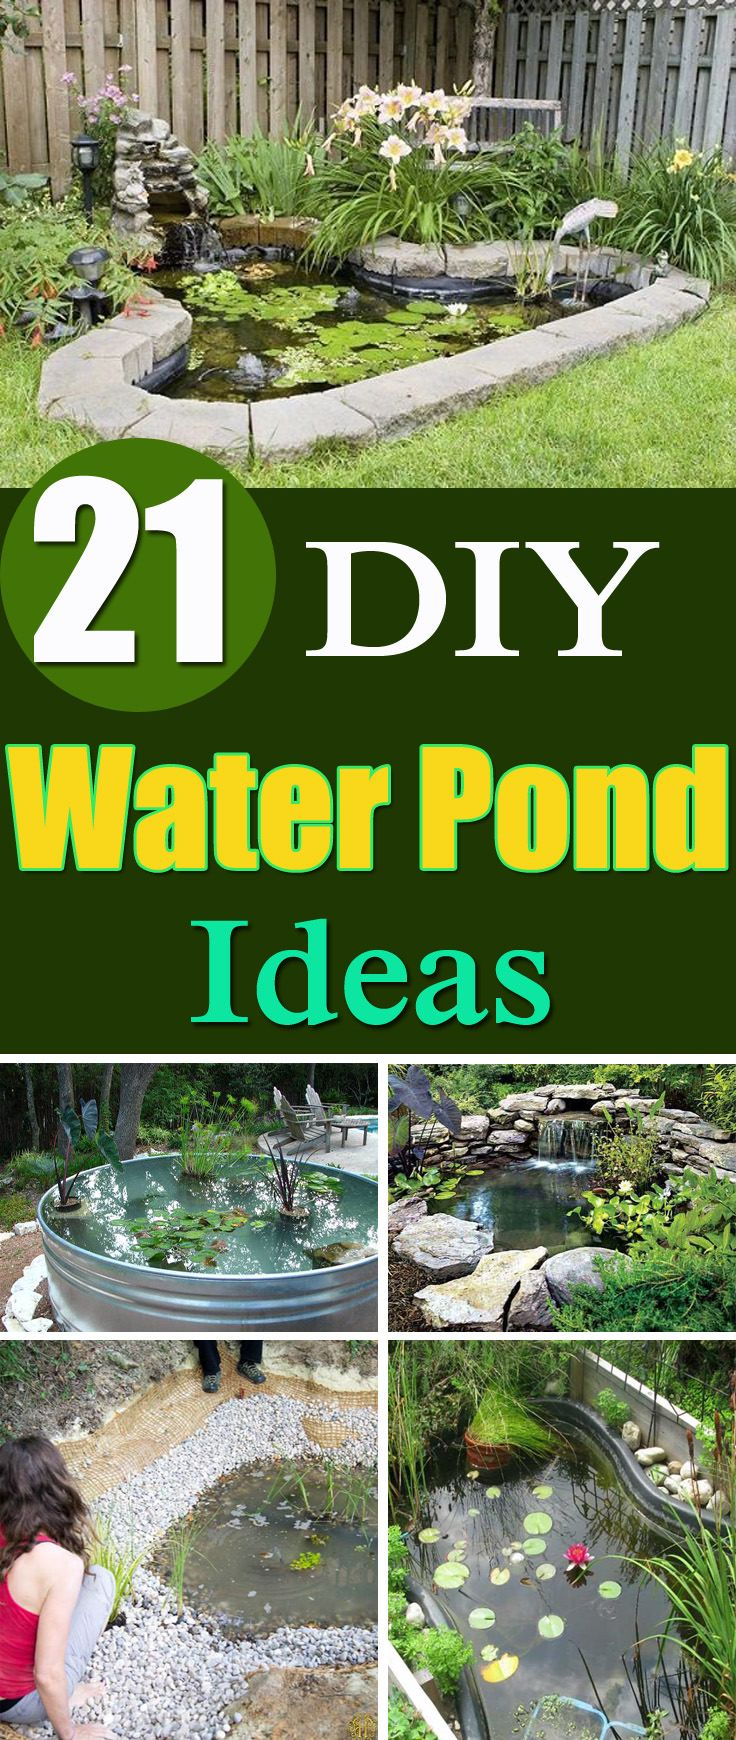 If you've got a backyard and adding a water feature is your dream, follow it by trying one of these DIY Water Pond Ideas!